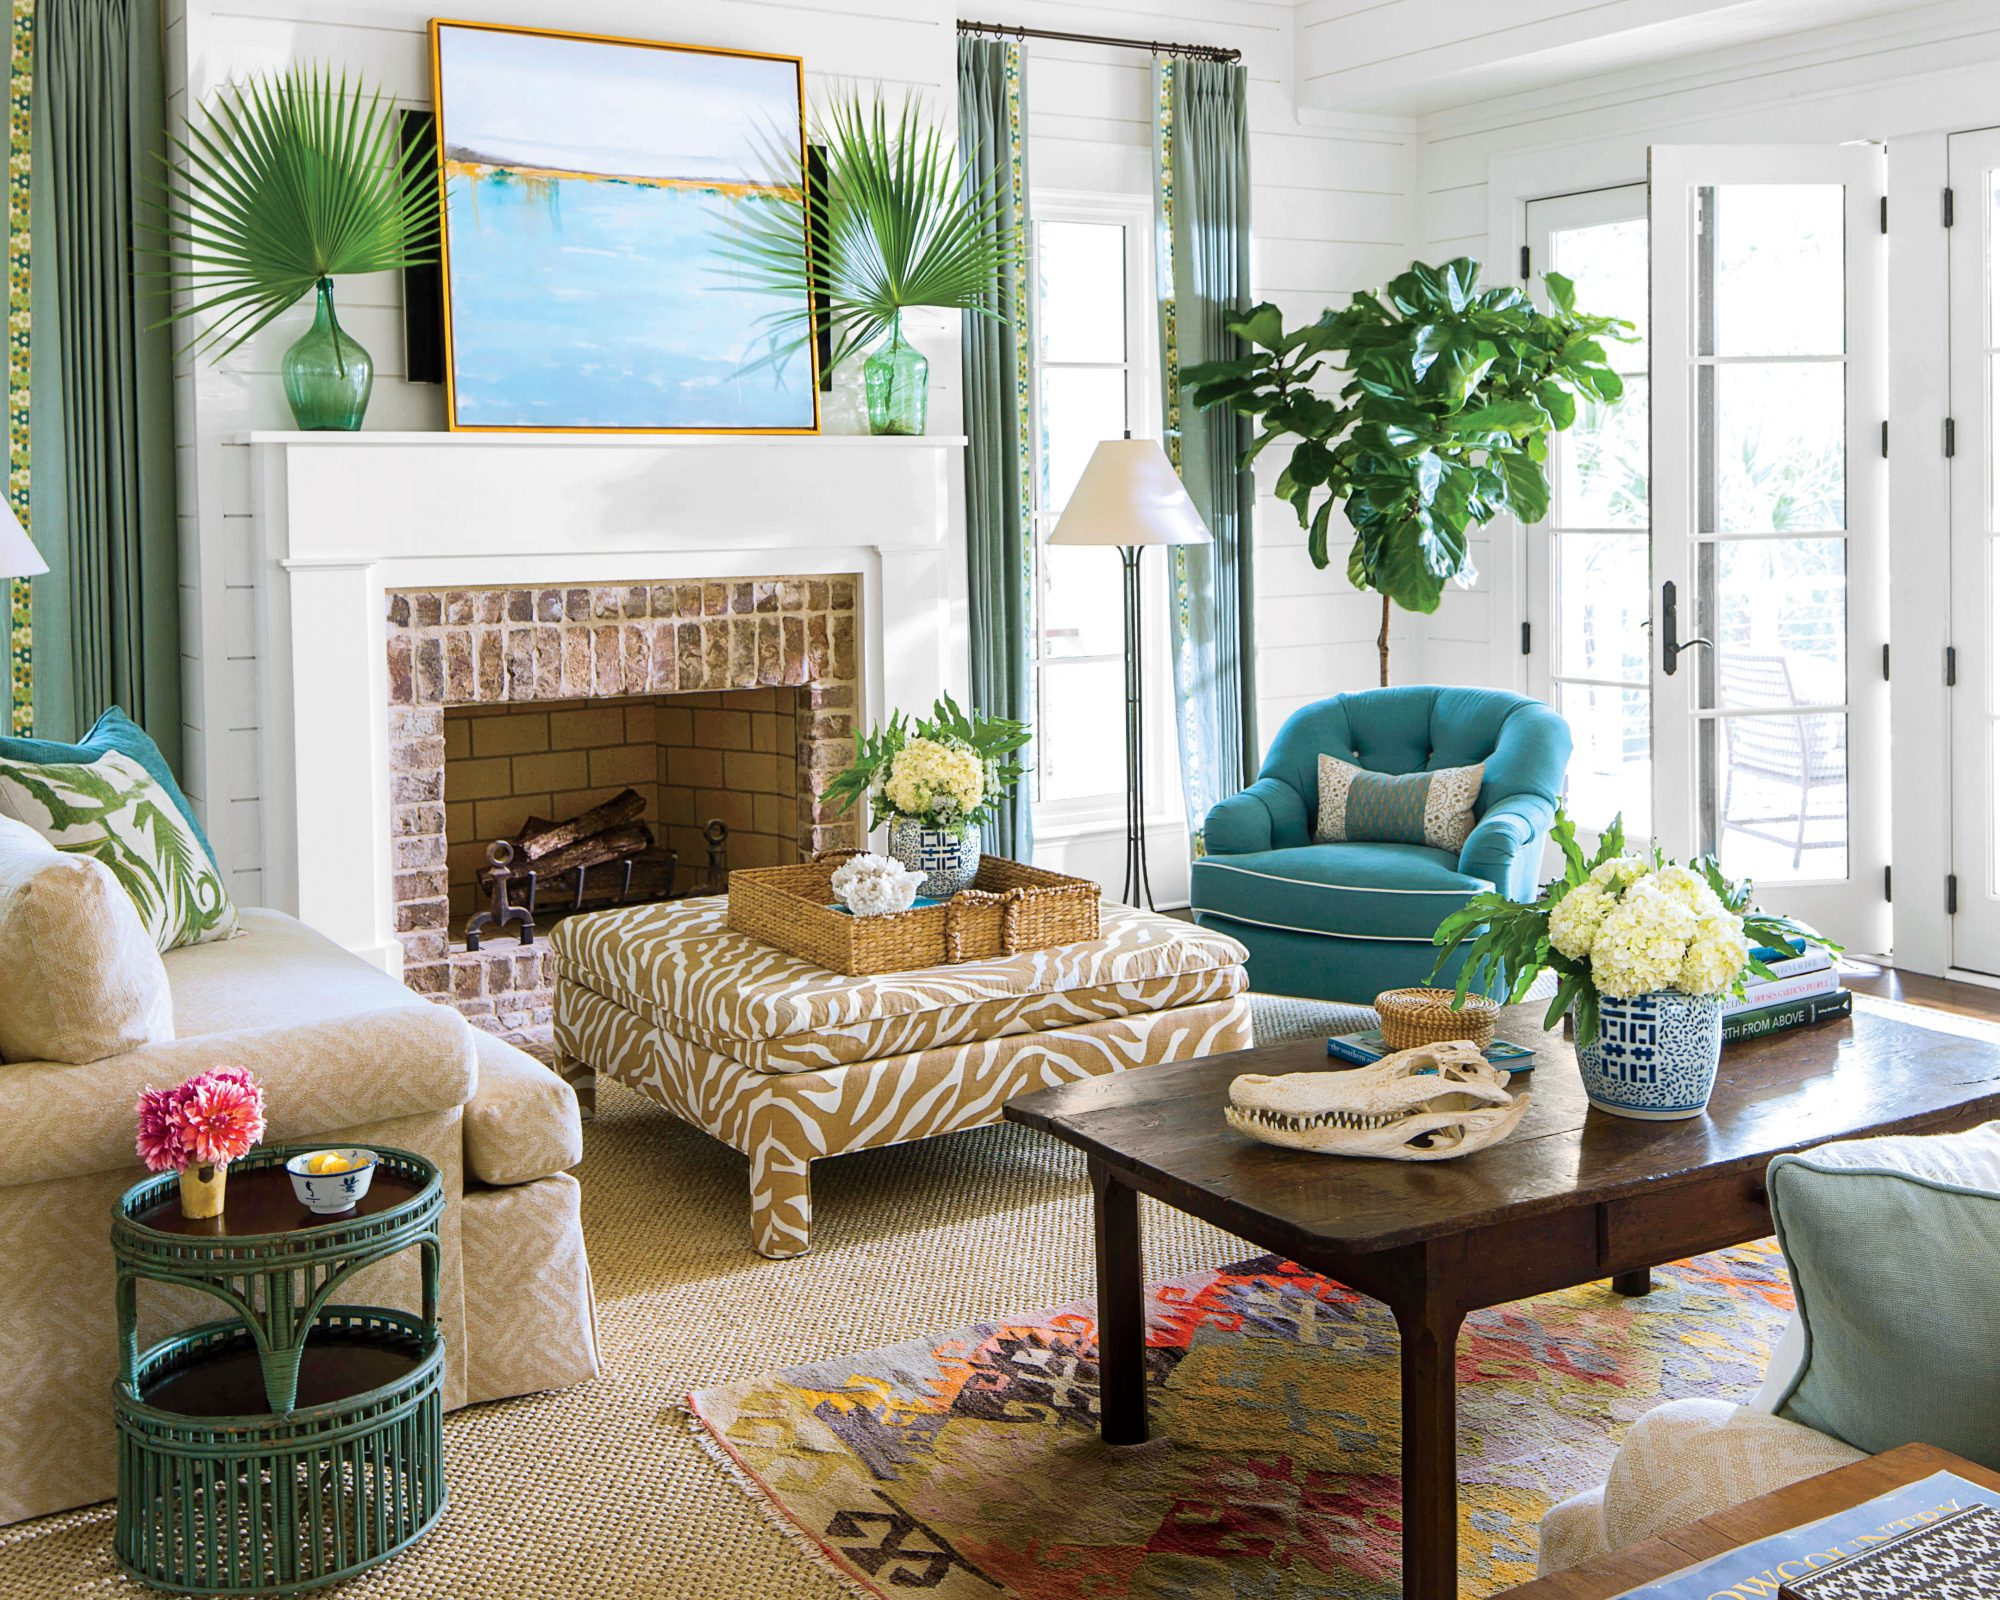 Great Room Decorating Ideas 106 living room decorating ideas - southern living